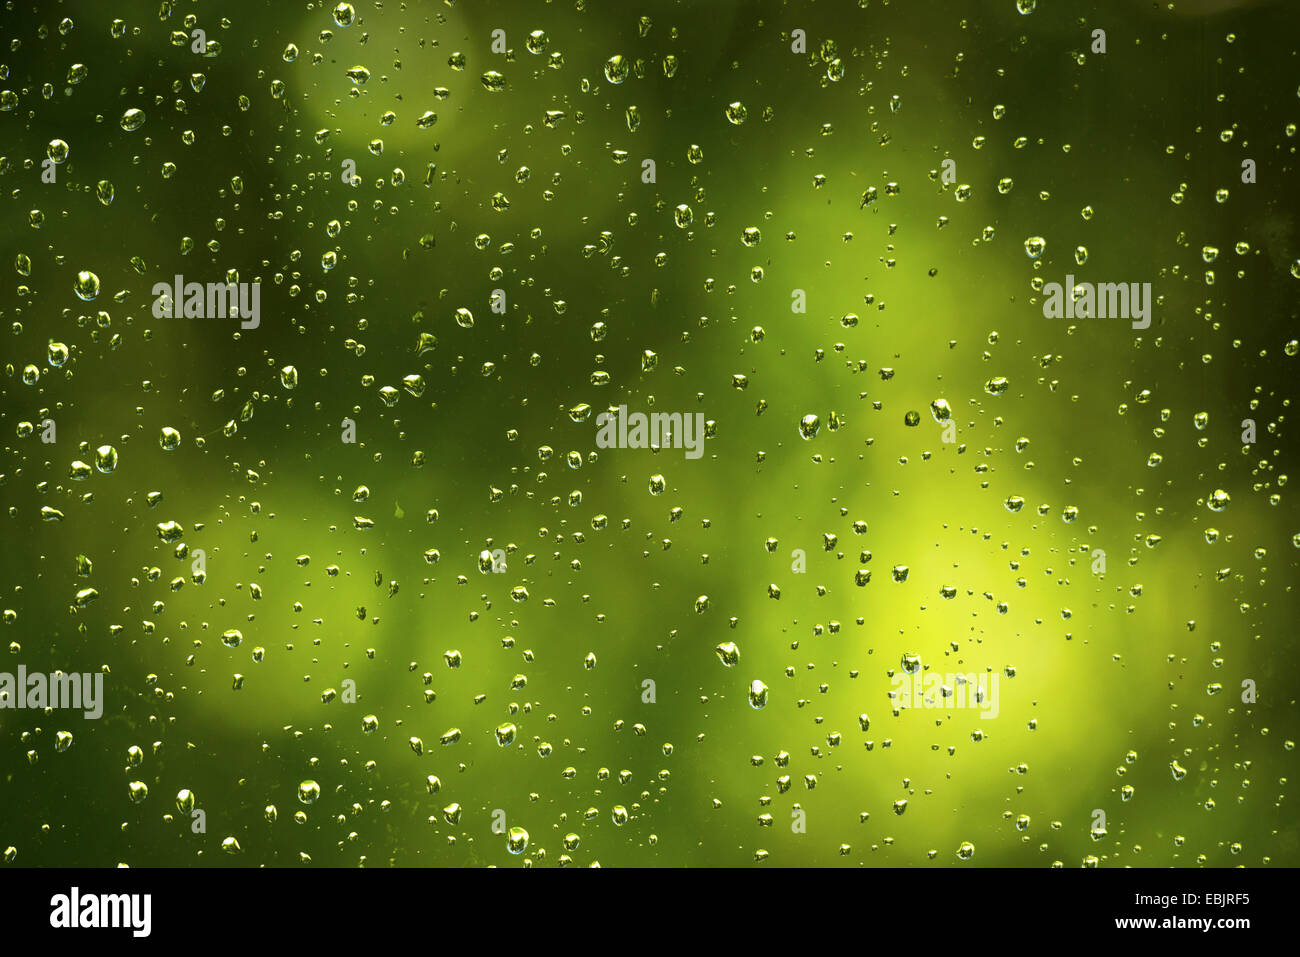 raindrops at a window pane, Germany - Stock Image